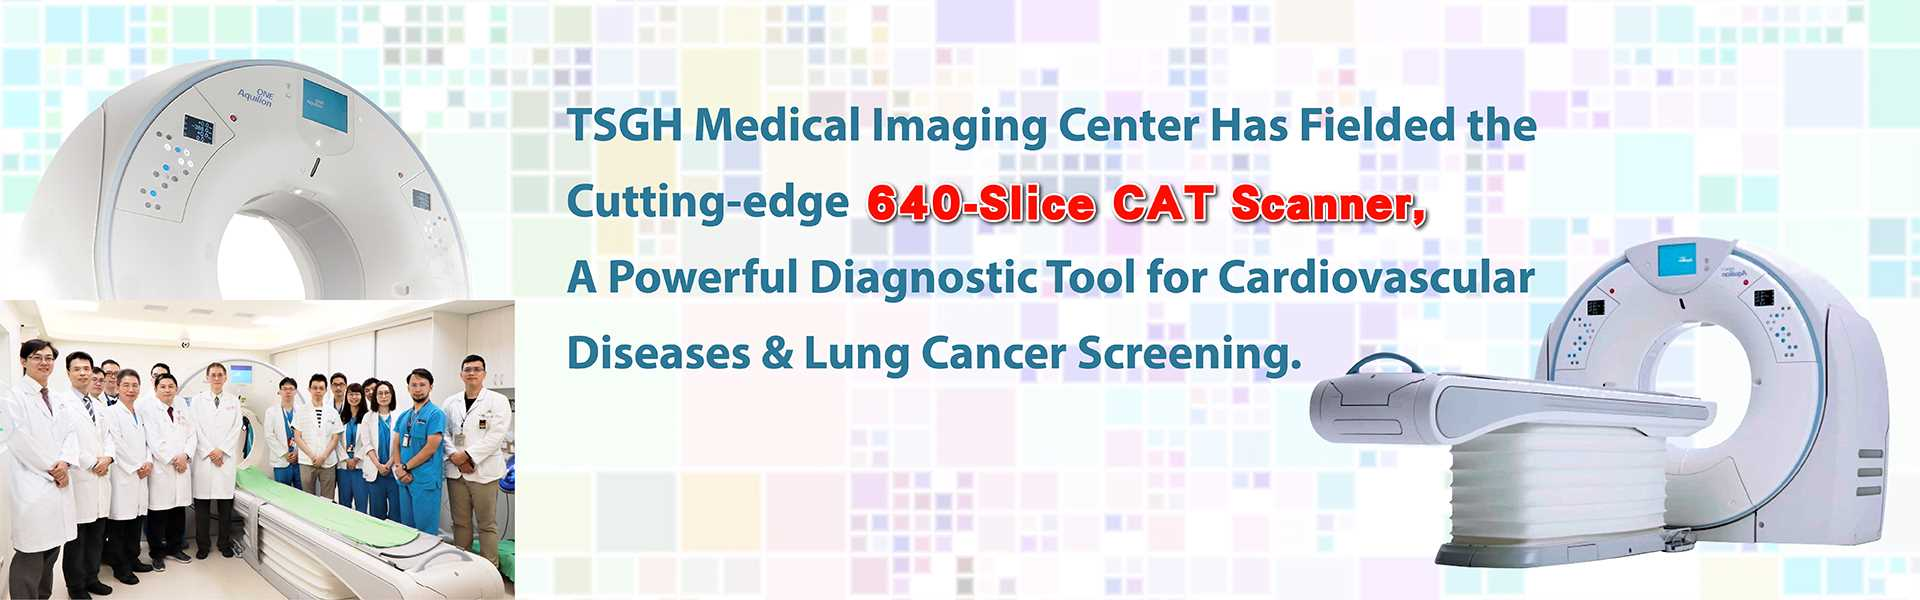 TSGH_Medical_Imaging_Center_has_fielded_the_Cutting-edge_640-Slice_CAT_Scanner-A_Powerful_Diagnostic_Tool_for_Cardiovascular_Diseases_&_Lung_Cancer_Screening